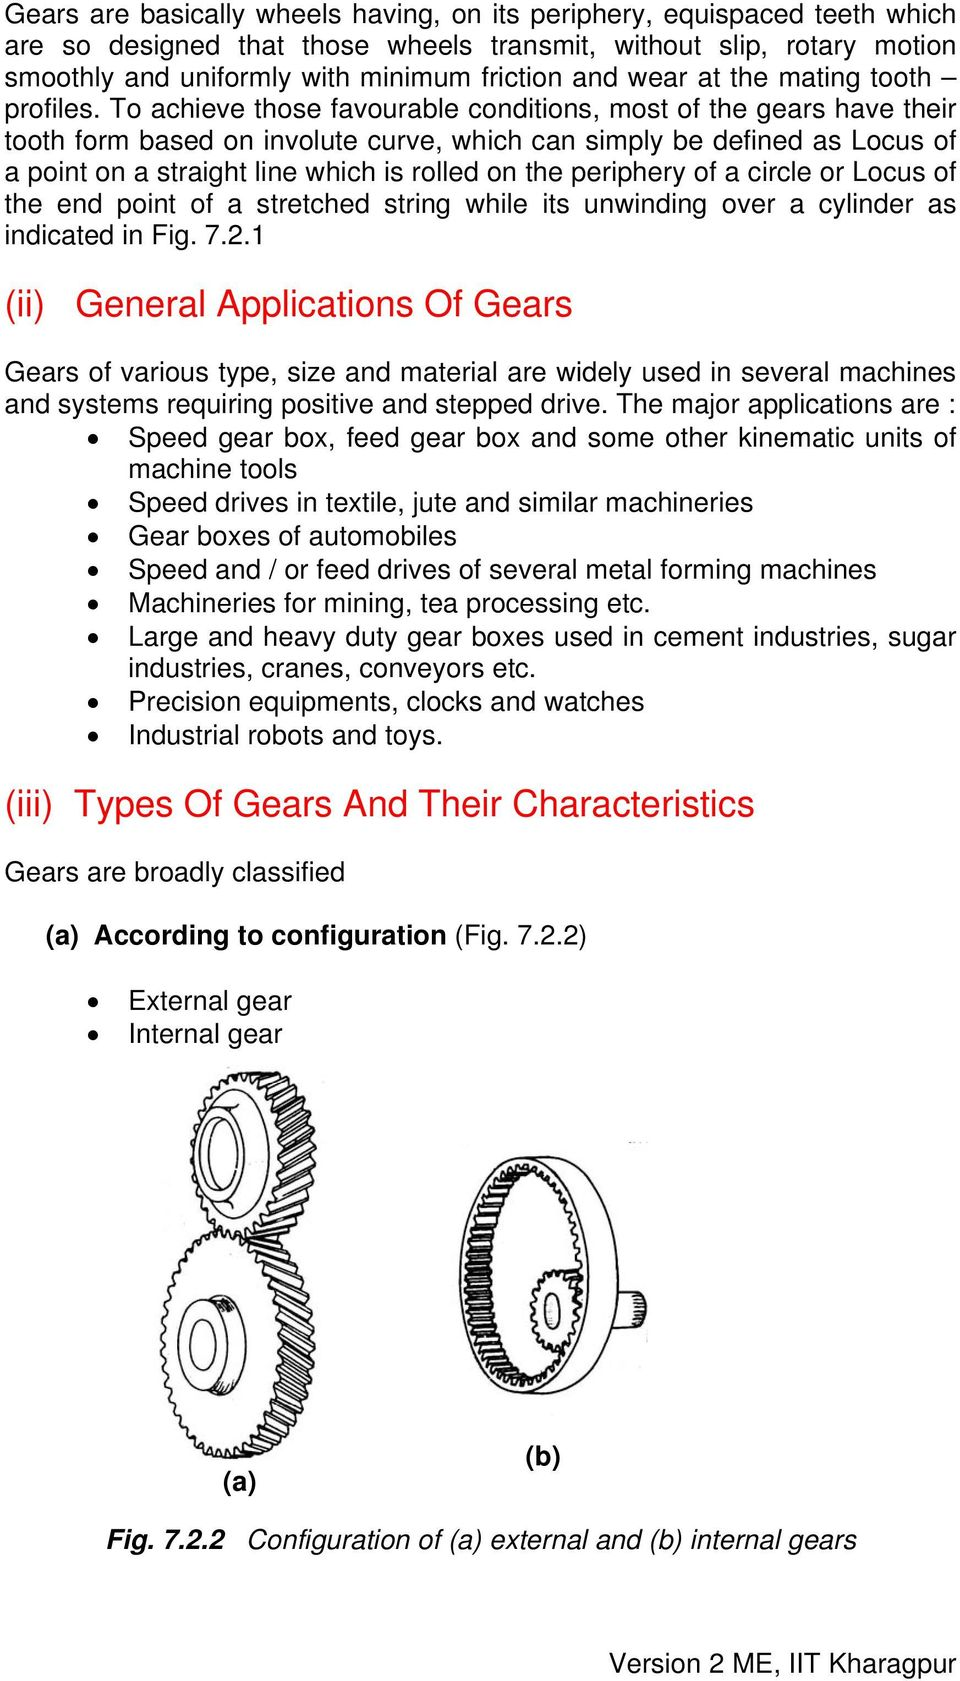 To achieve those favourable conditions, most of the gears have their tooth form based on involute curve, which can simply be defined as Locus of a point on a straight line which is rolled on the